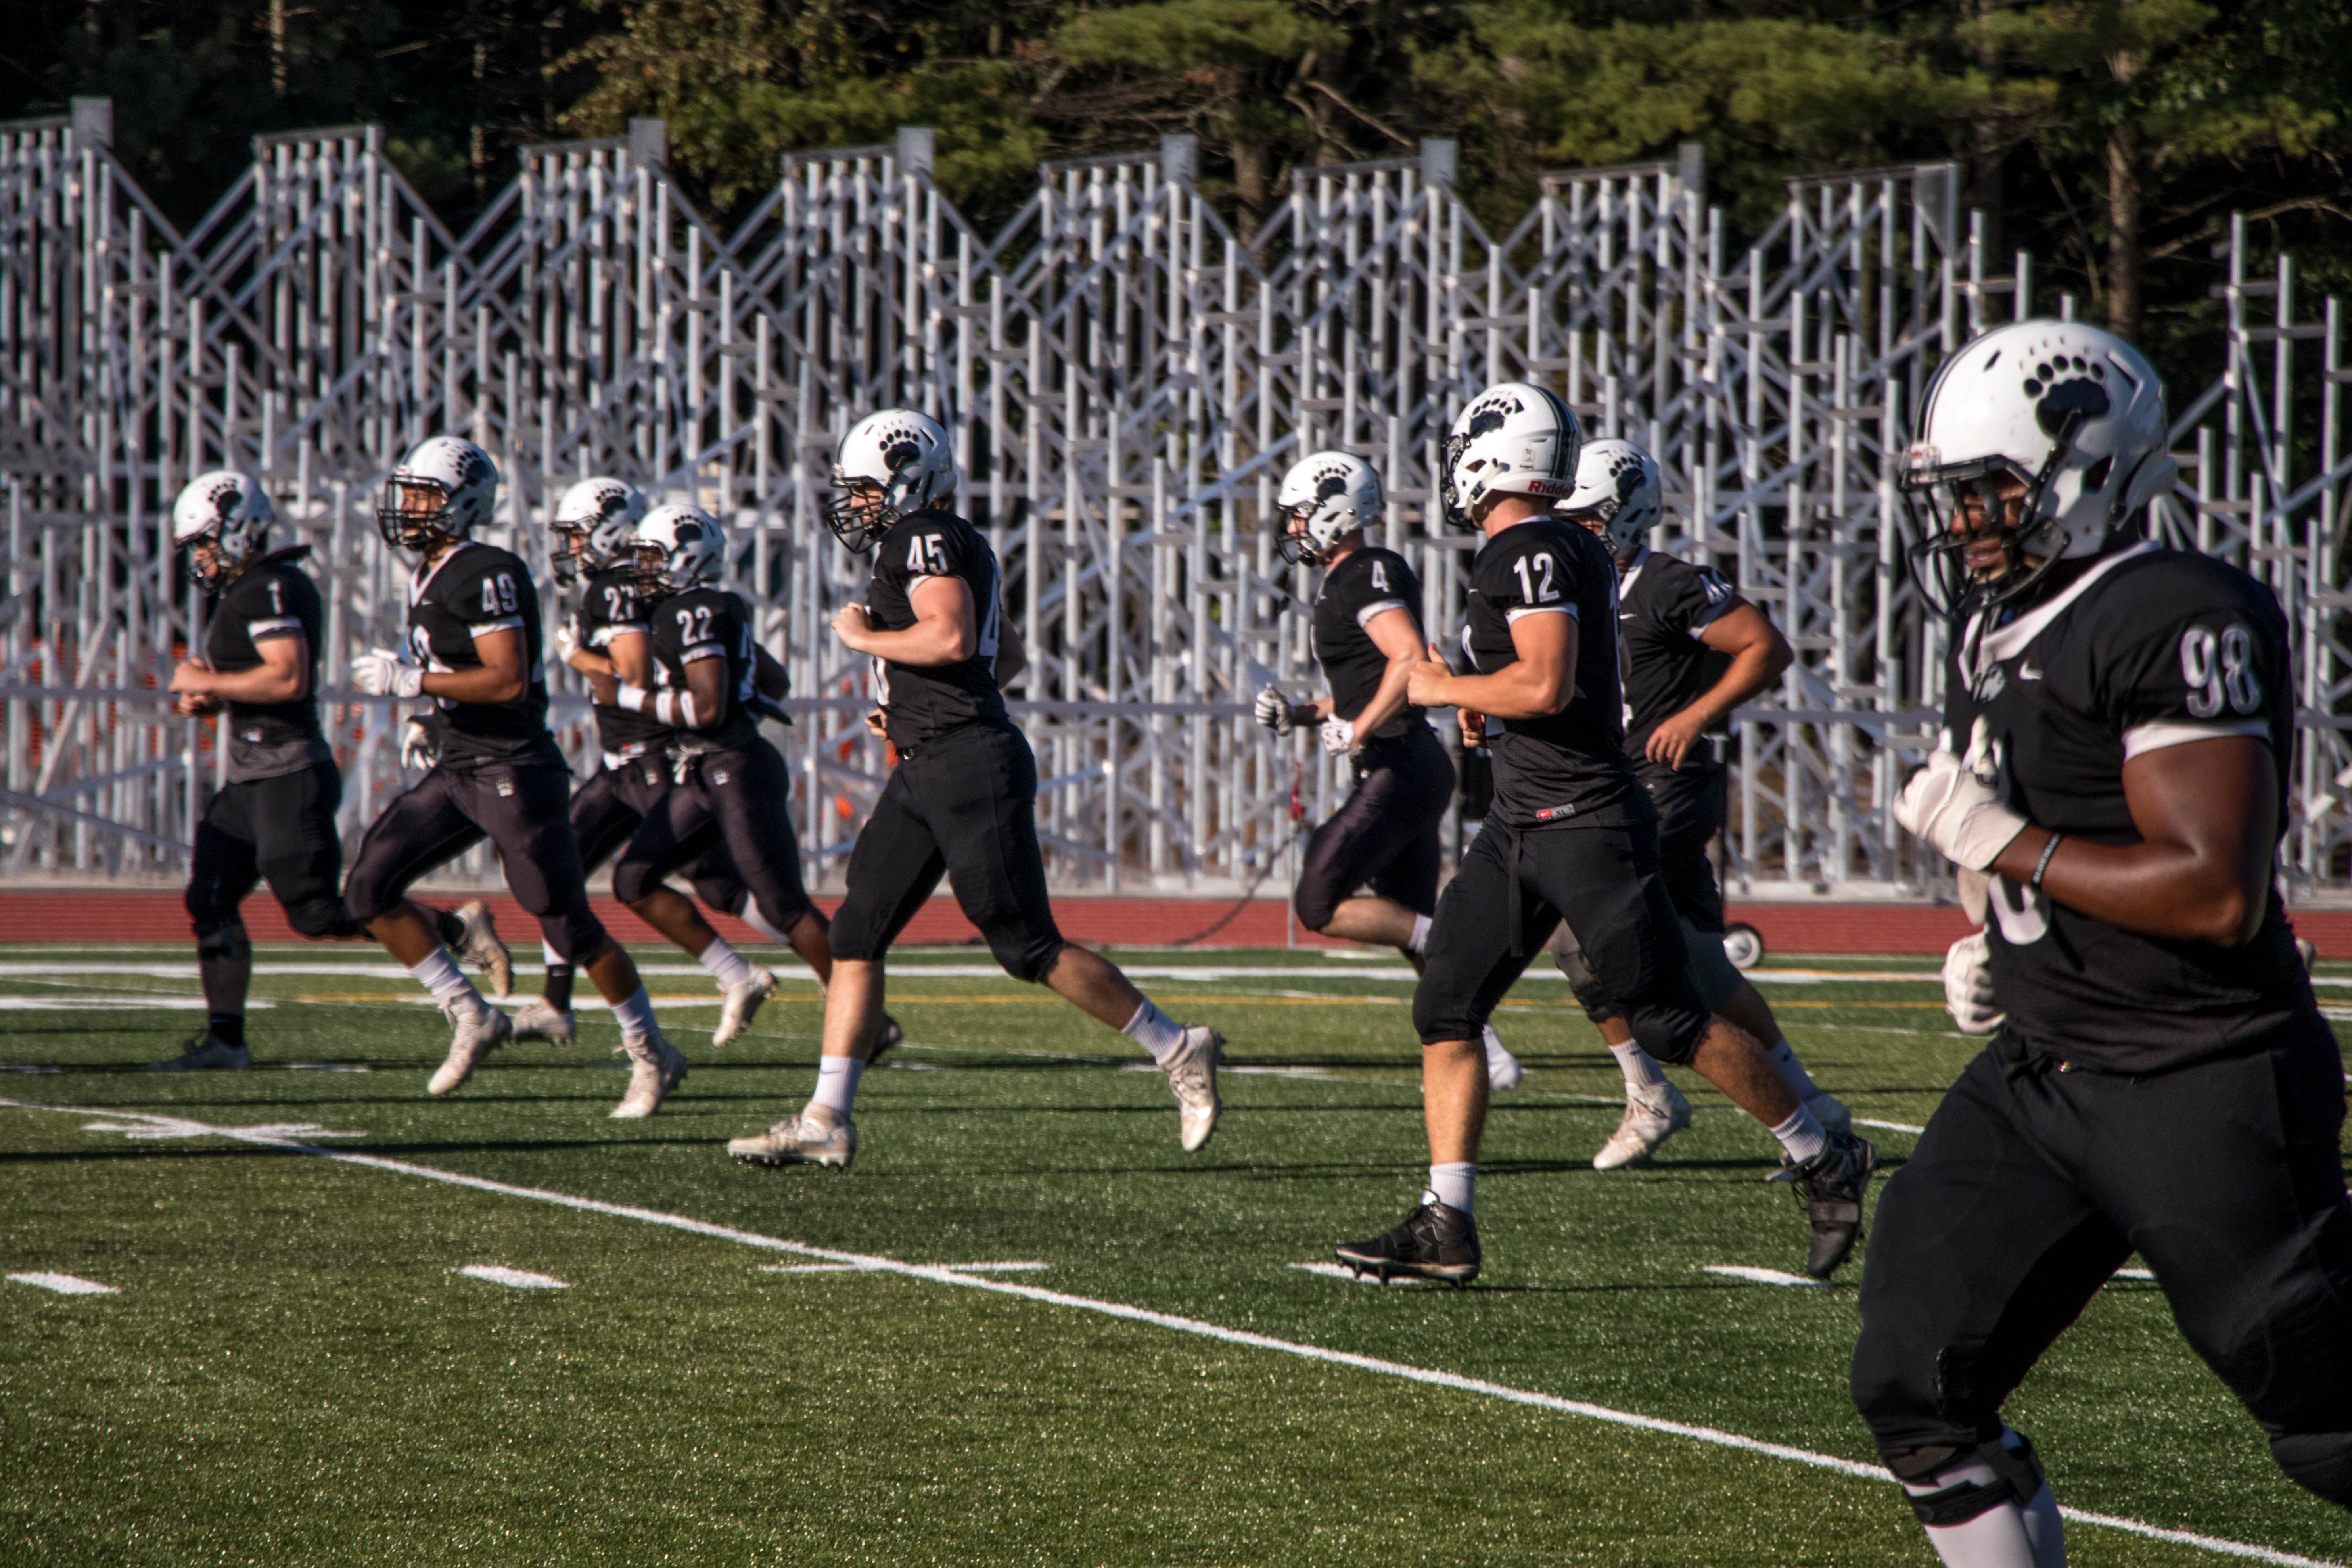 Football Team Counting On Hope And New Qb For Wins The Bowdoin Orient